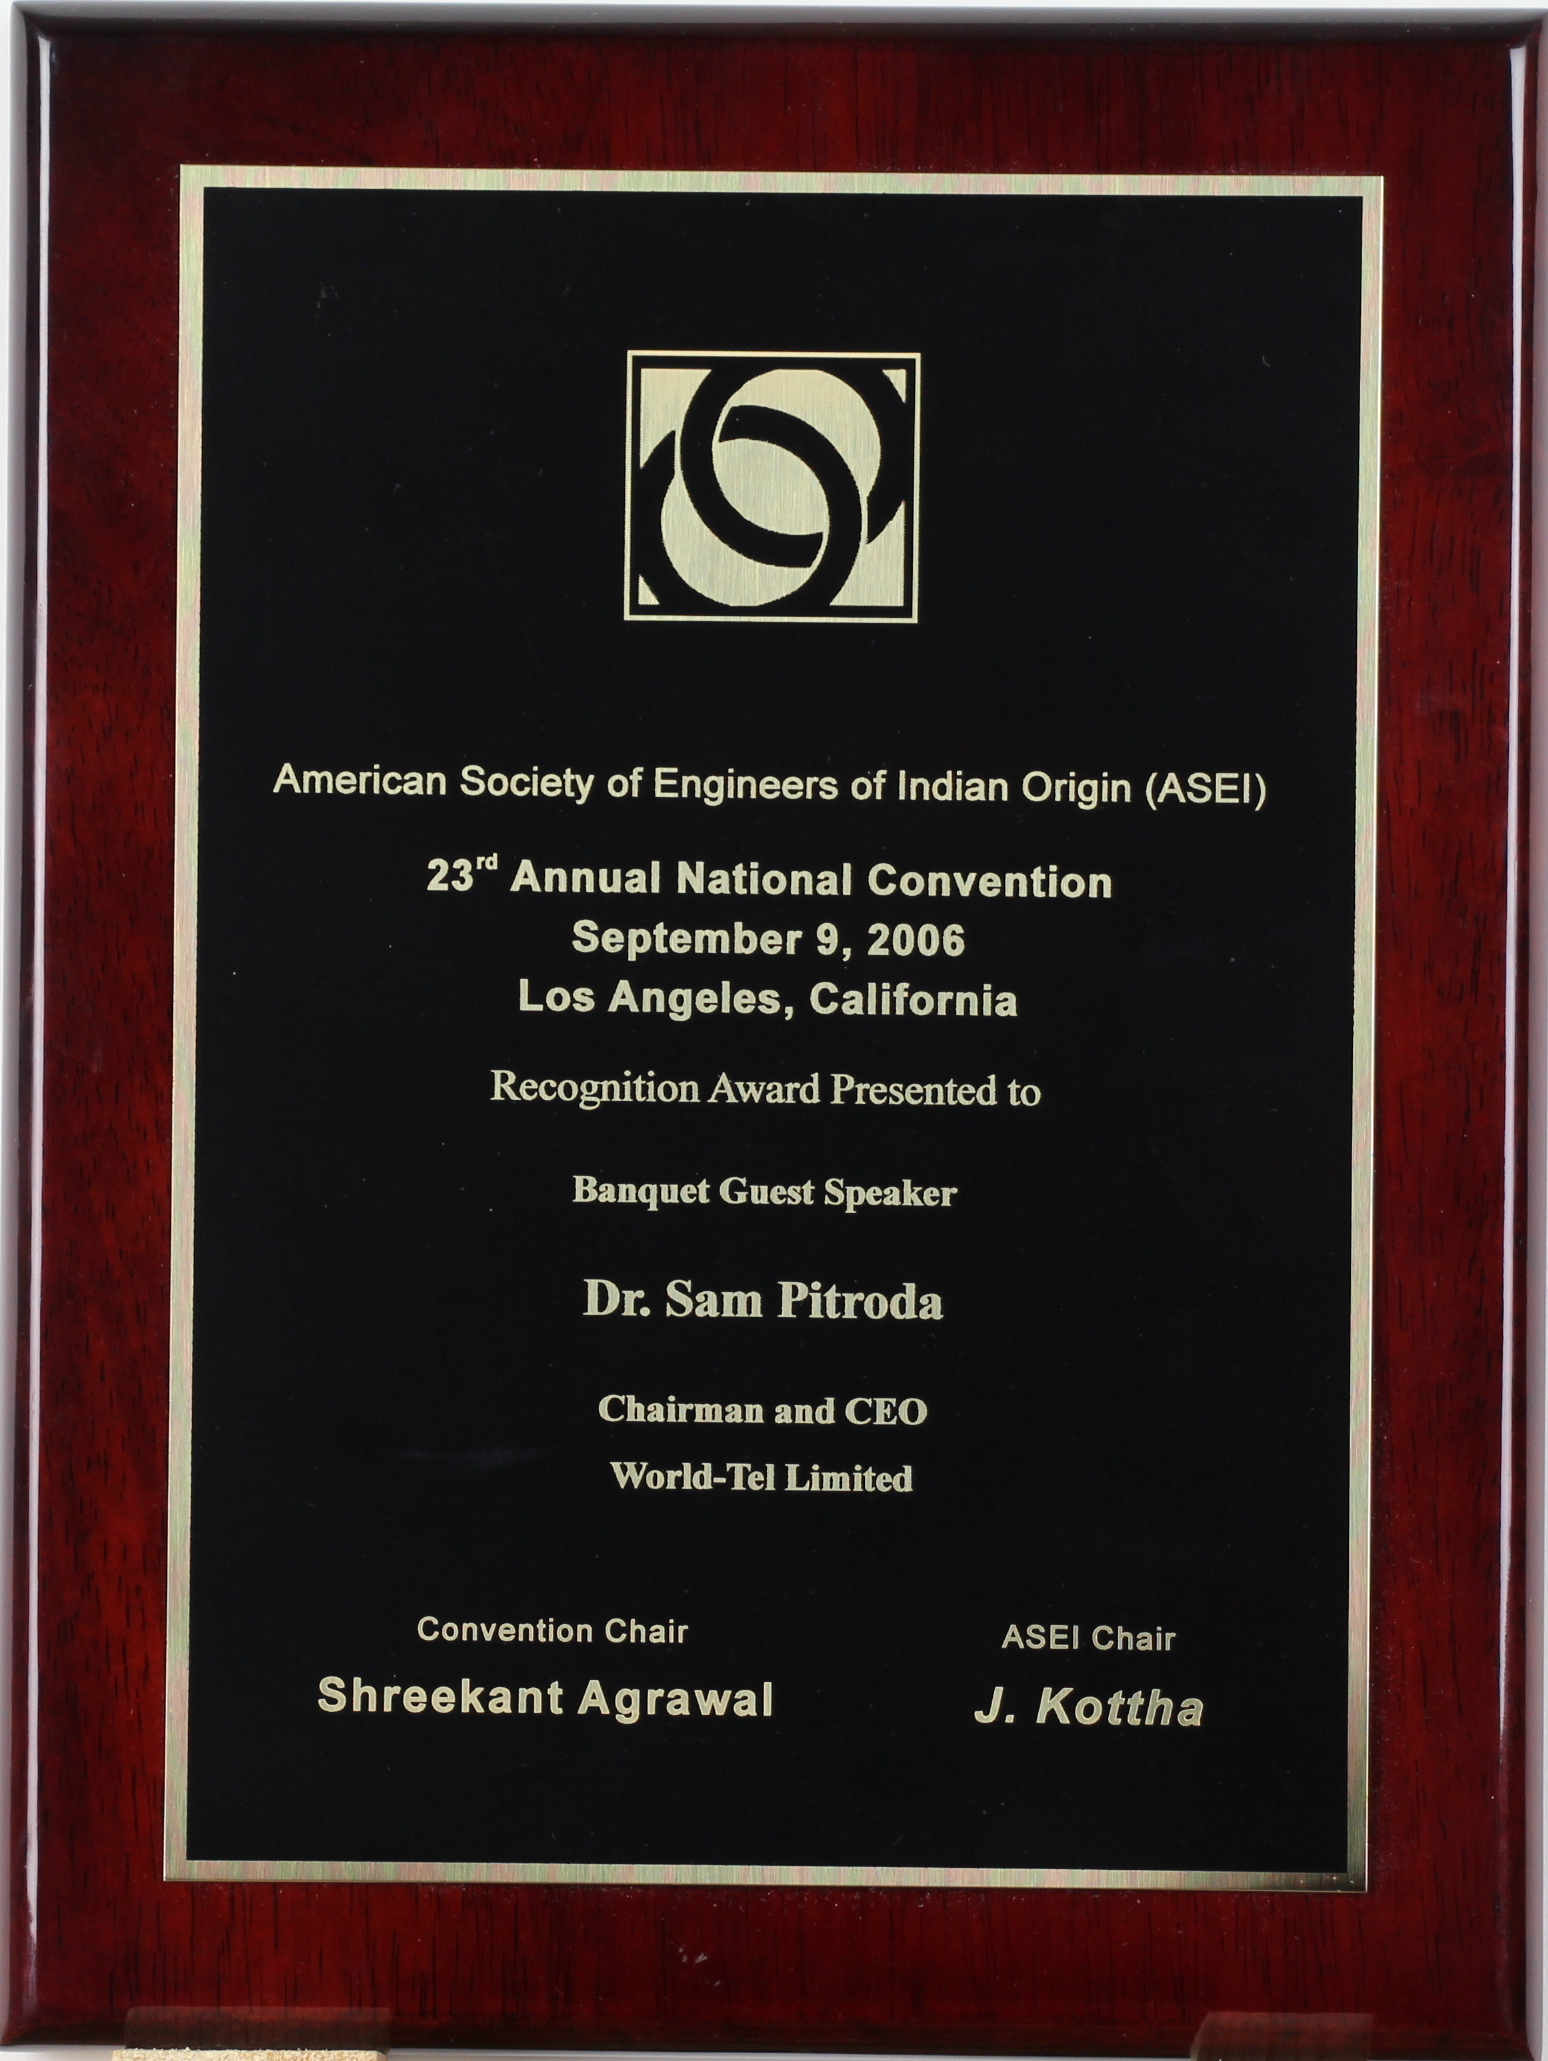 Recognition Award for Banquet Guest Speaker, 23rd National Convention, ASEI, 2006